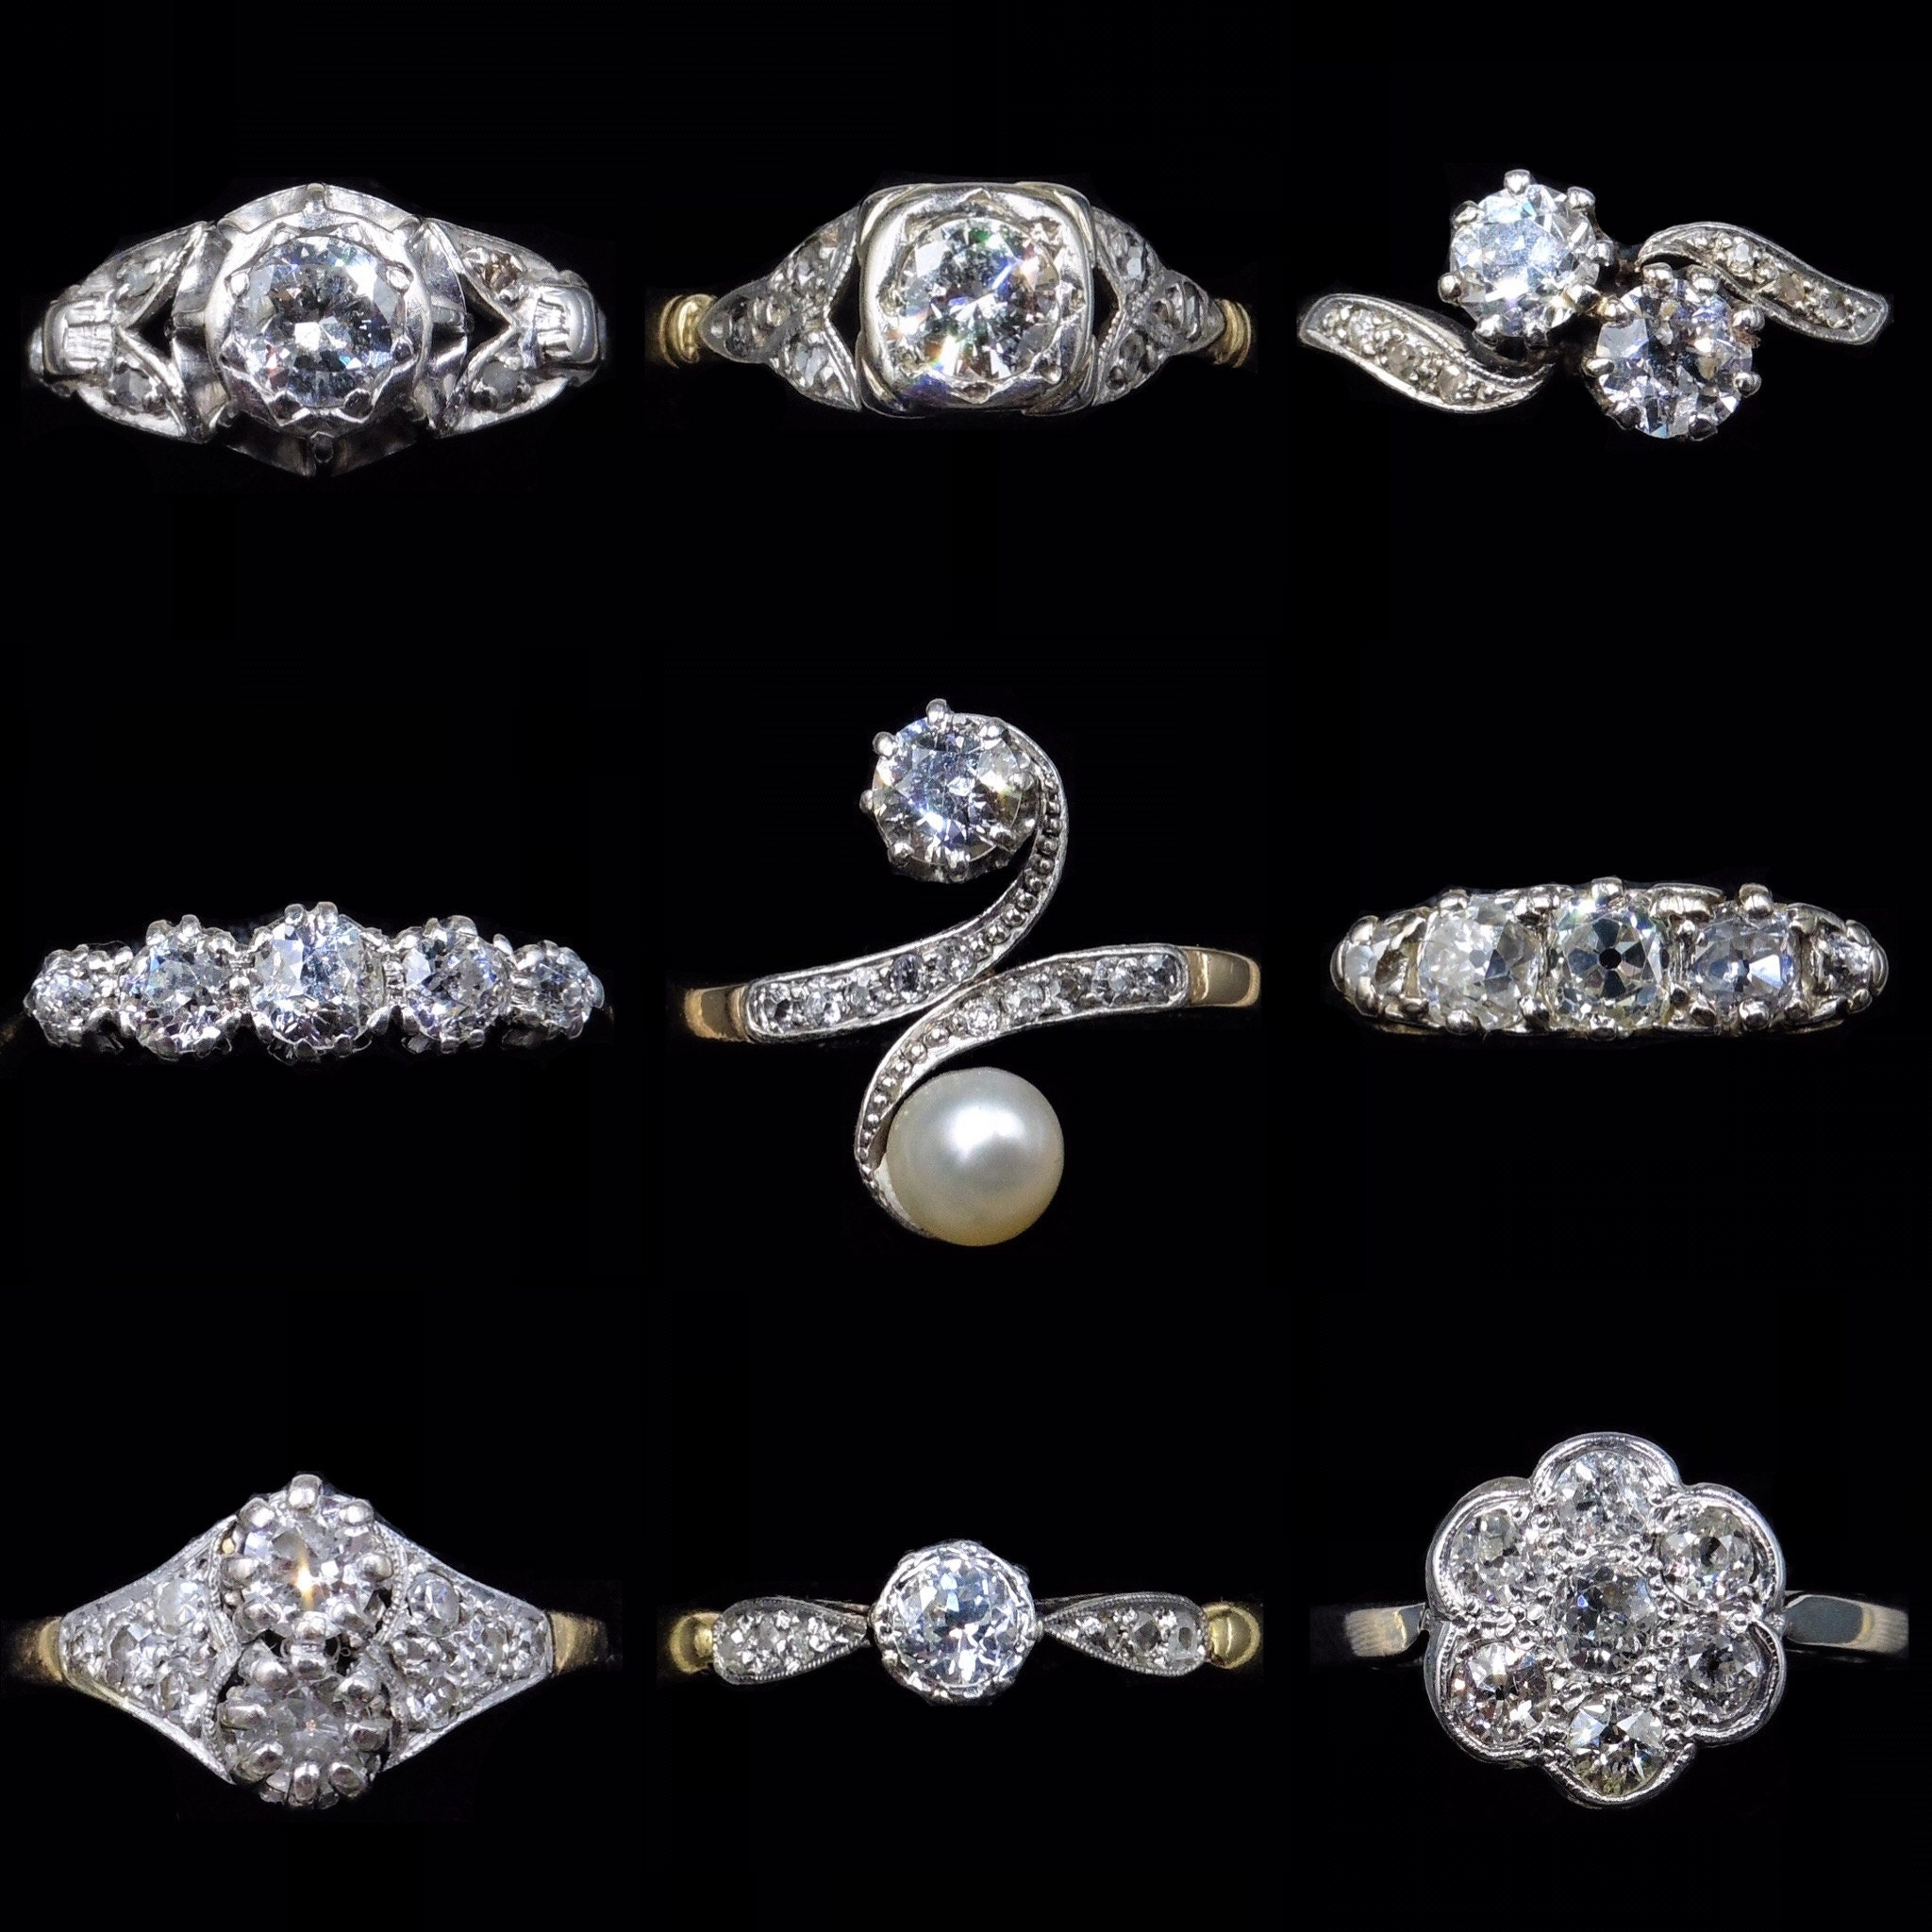 Selection of our Diamonds